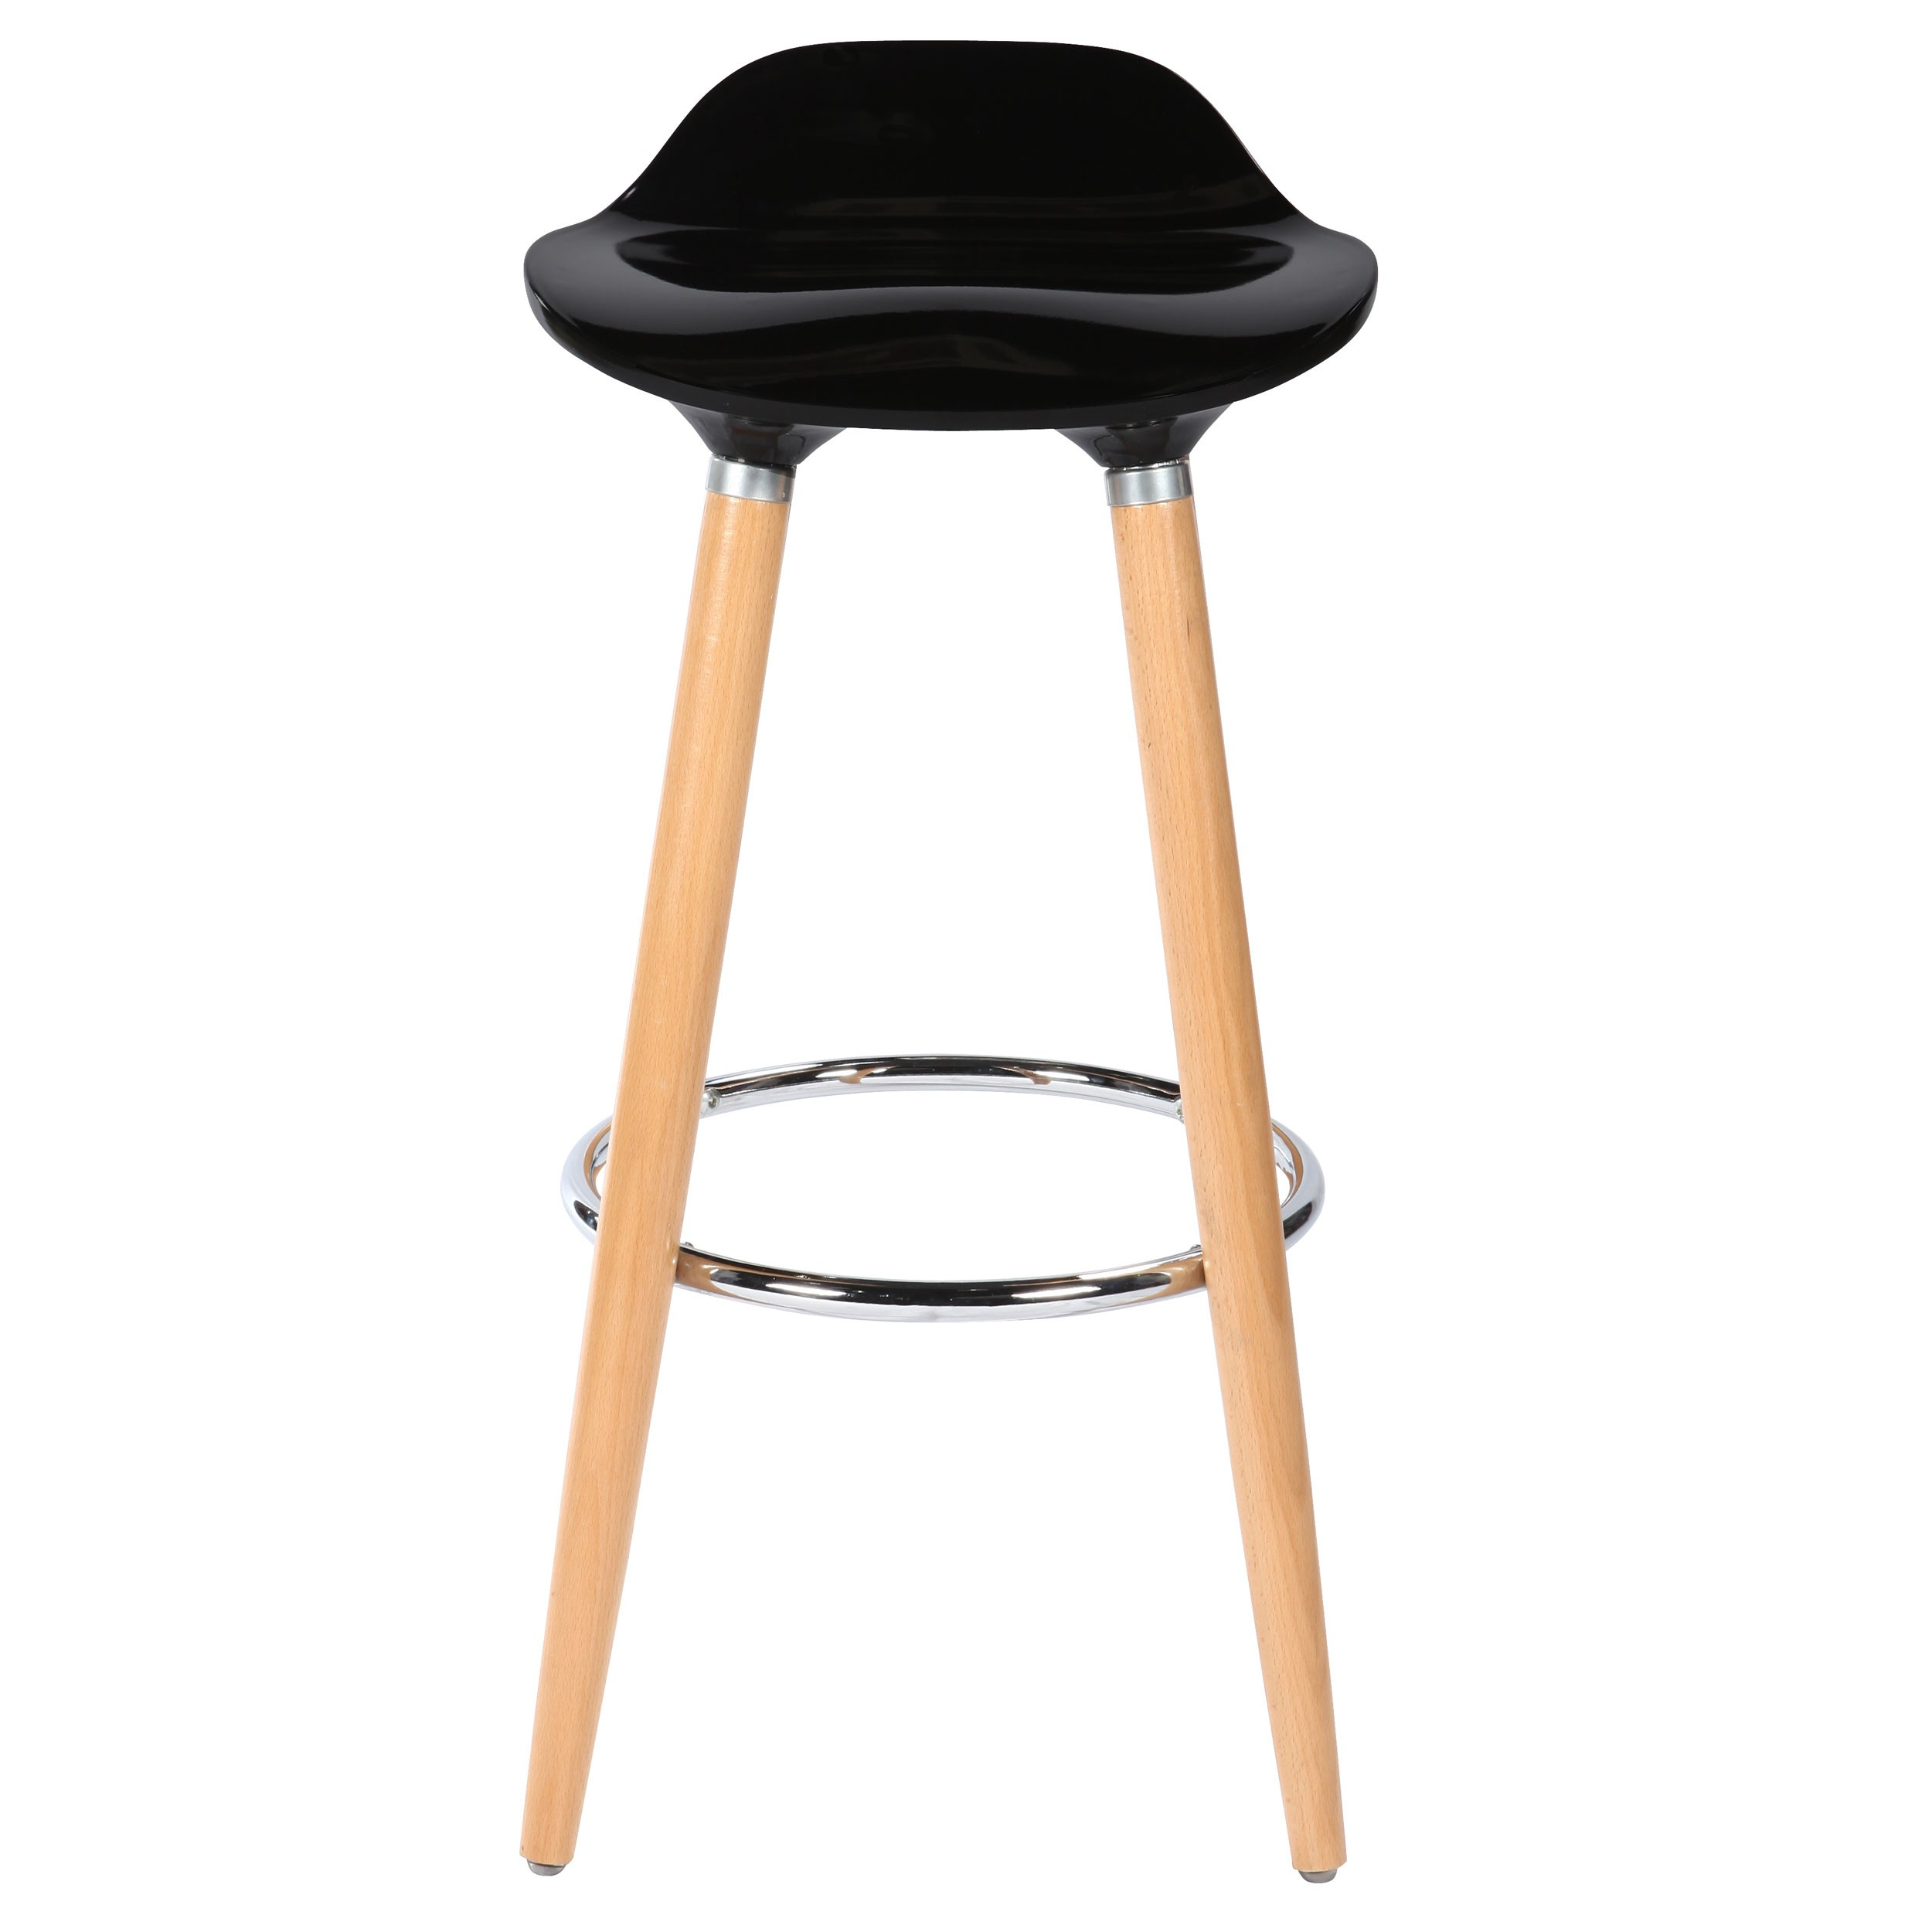 Tabouret De Bar Design Italien Tabouret De Bar Design Italien Tabouret De Bar Design